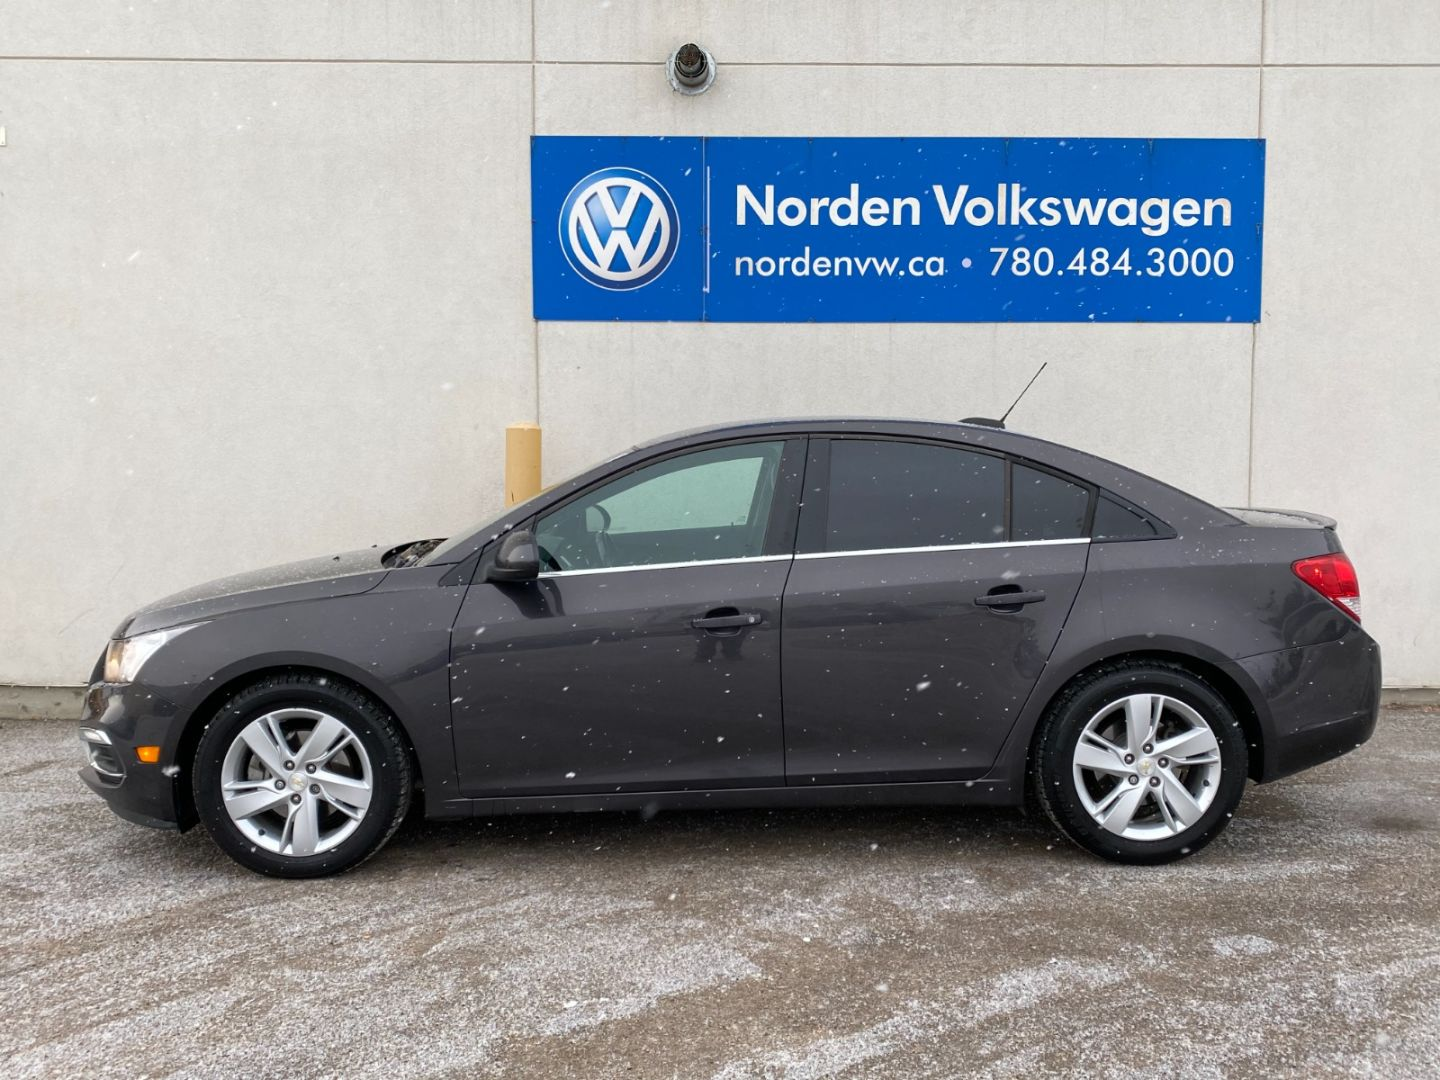 2015 Chevrolet Cruze Diesel for sale in Edmonton, Alberta